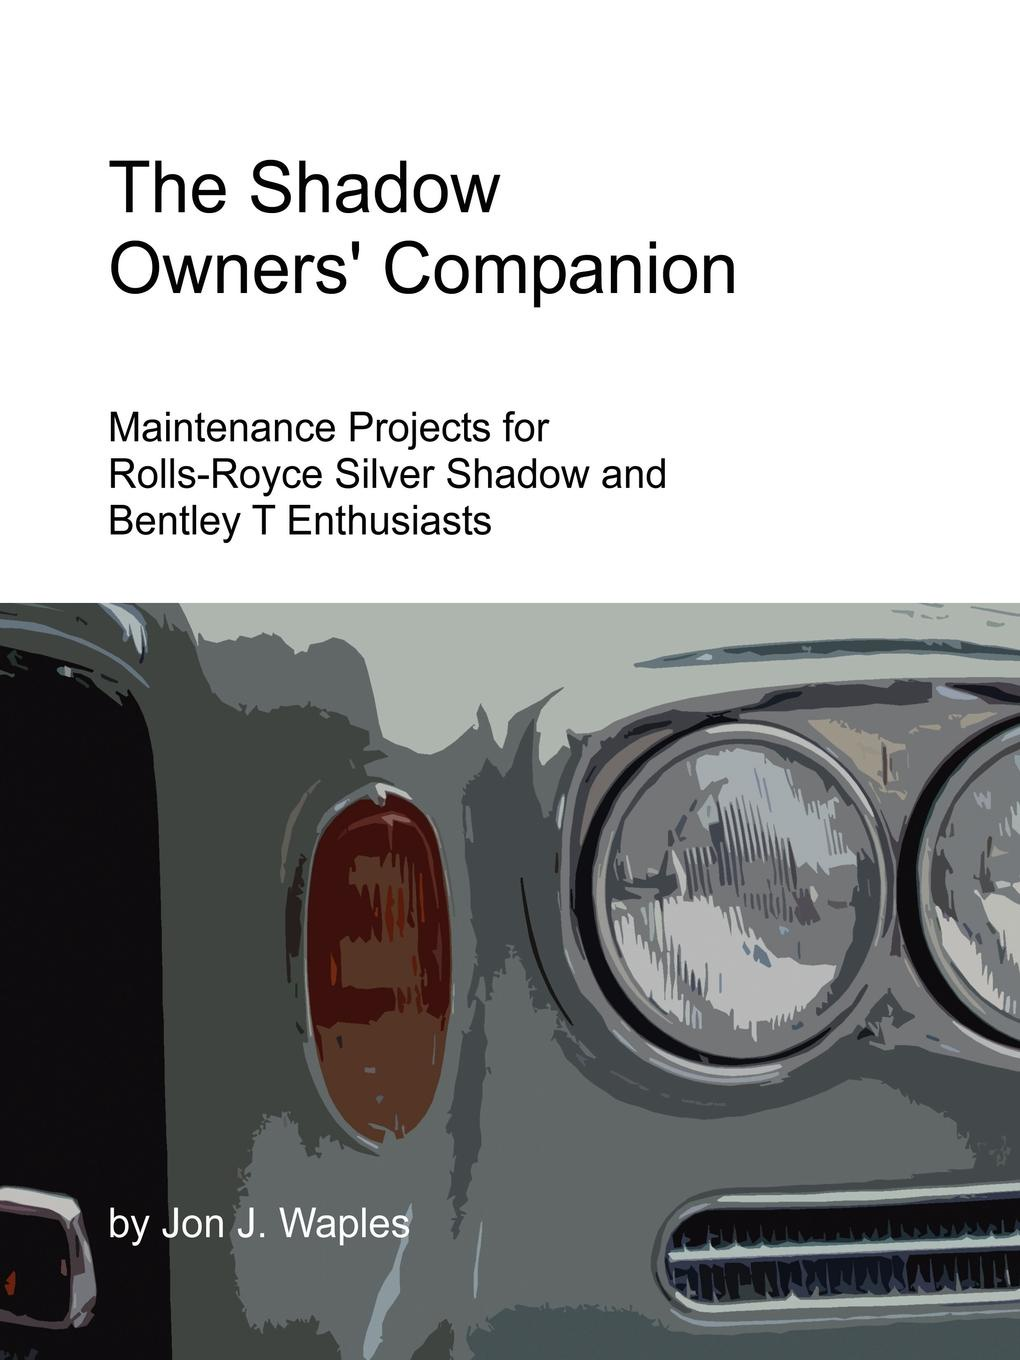 Jon Waples The Shadow Owners' Companion. Maintenance Projects for Rolls-Royce Silver Shadow and Bentley T Enthusiasts hortense and the shadow